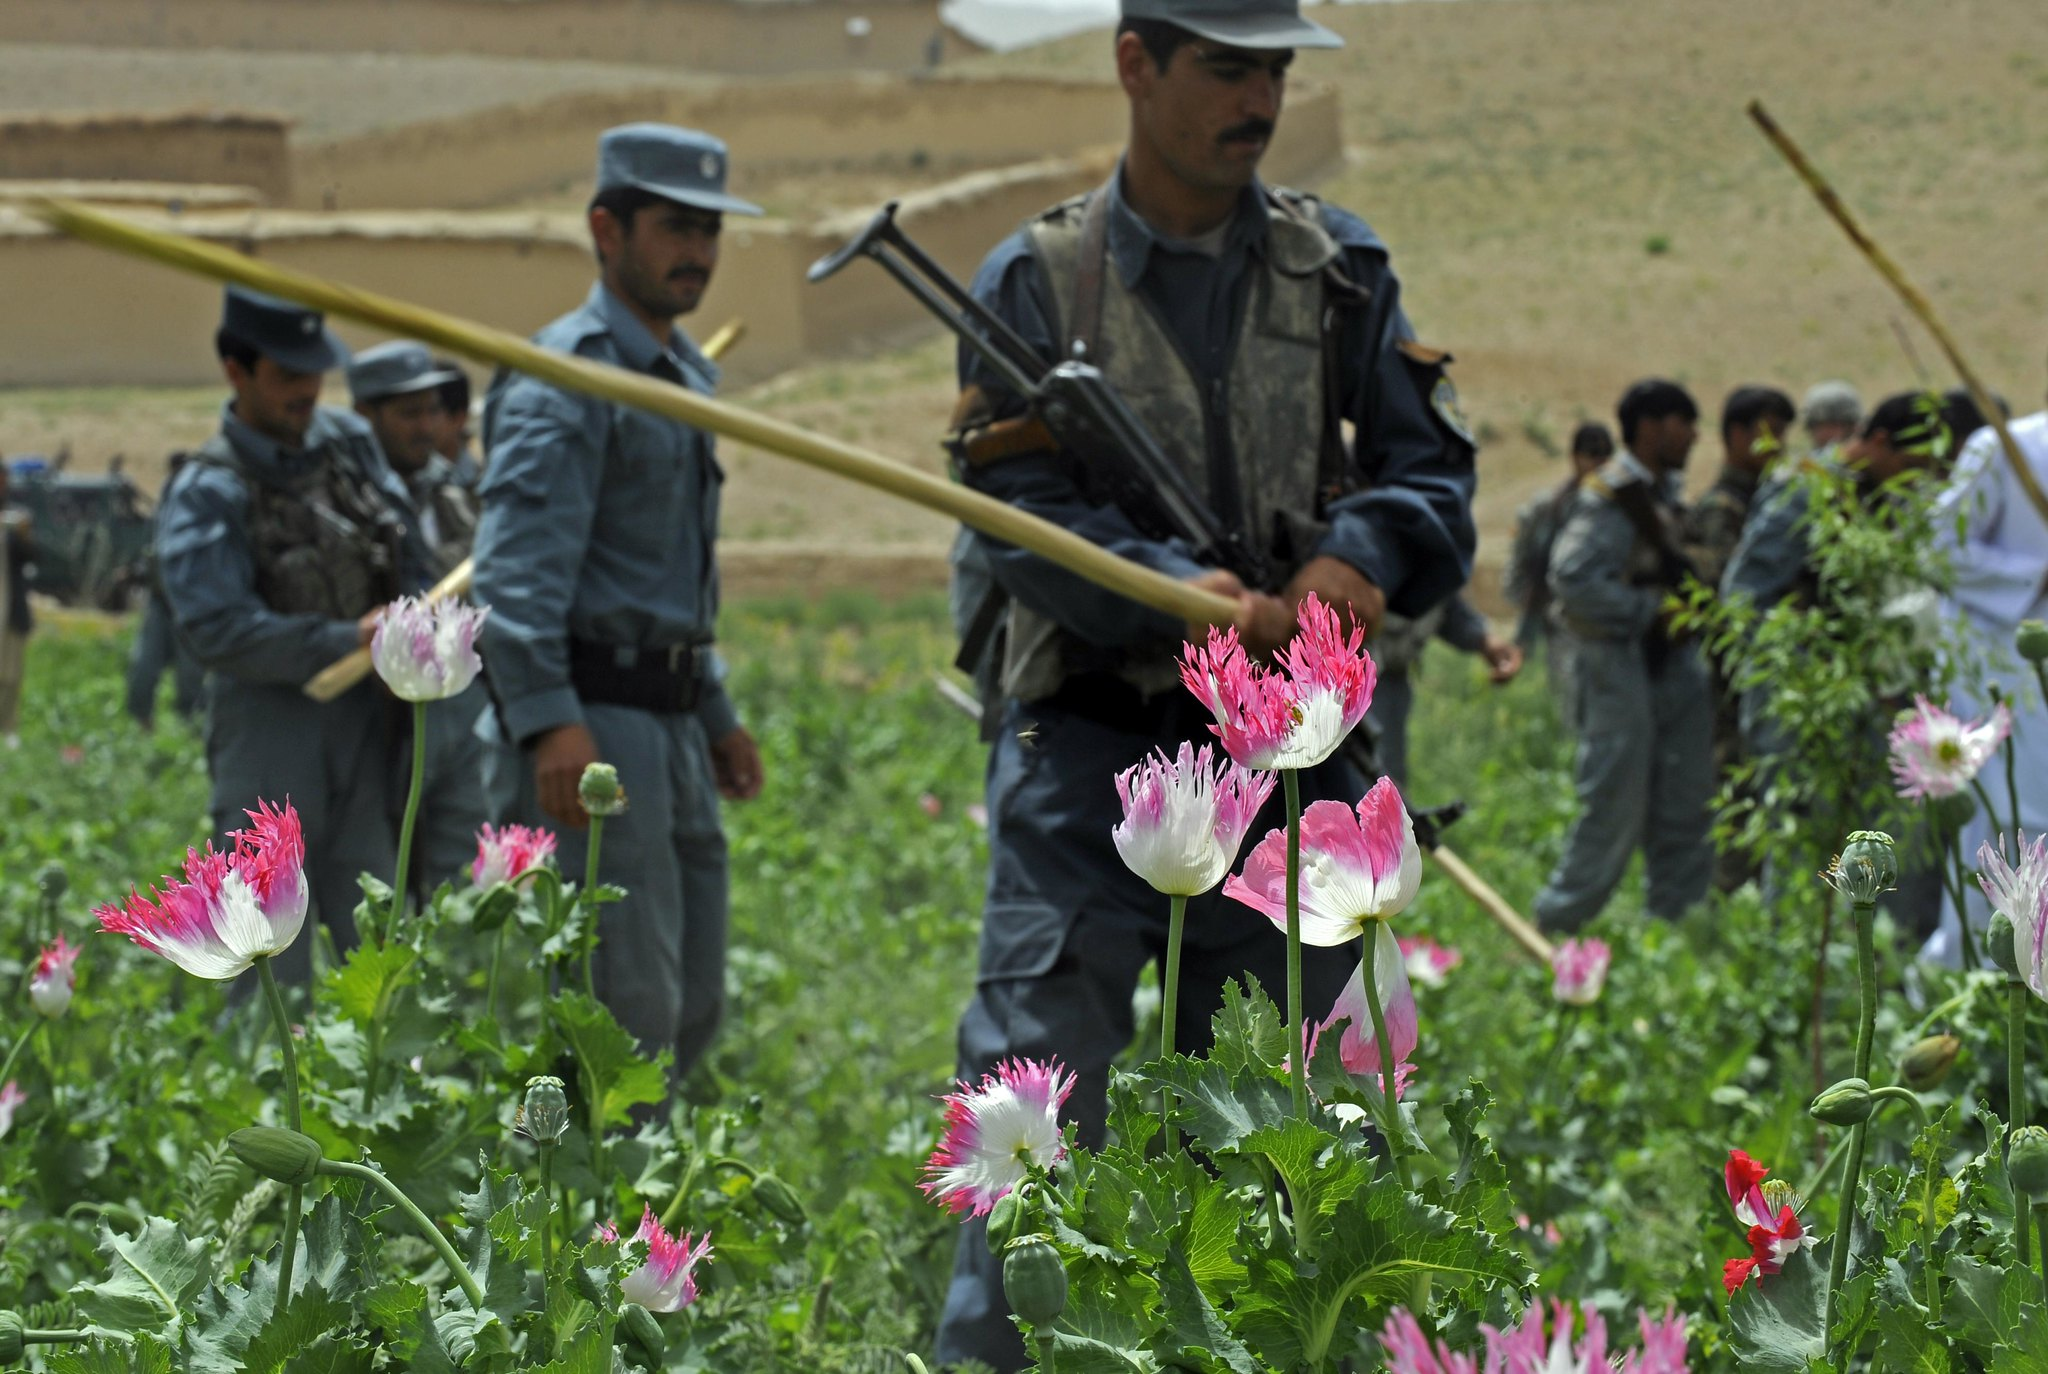 Eradicating Illicit Crops: Lessons from South America for Afghanistan